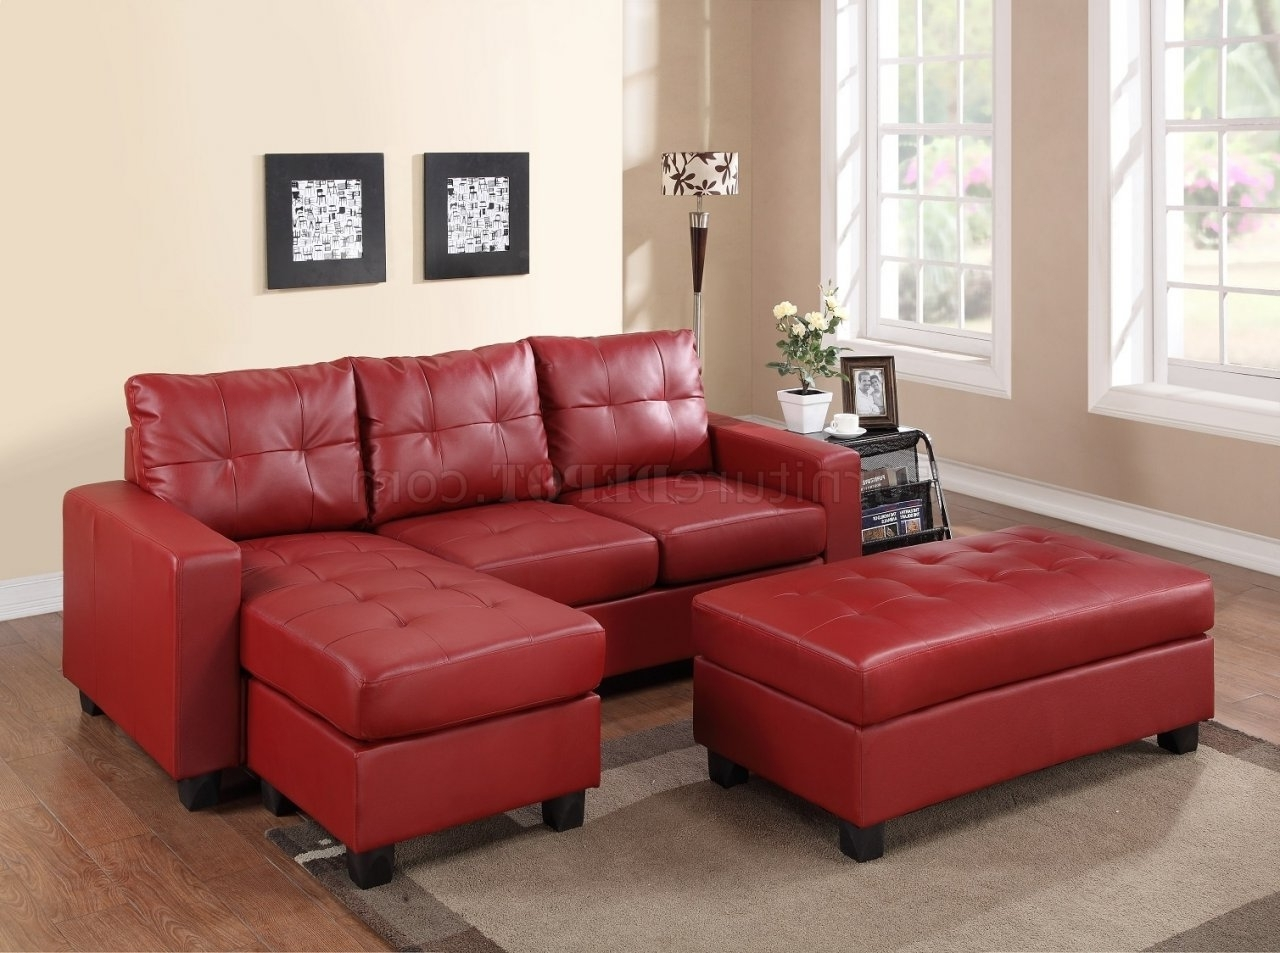 Red Leather Sectional Sofas With Ottoman Within Newest 2511 Sectional Sofa Set In Red Bonded Leather Match Pu (View 19 of 20)